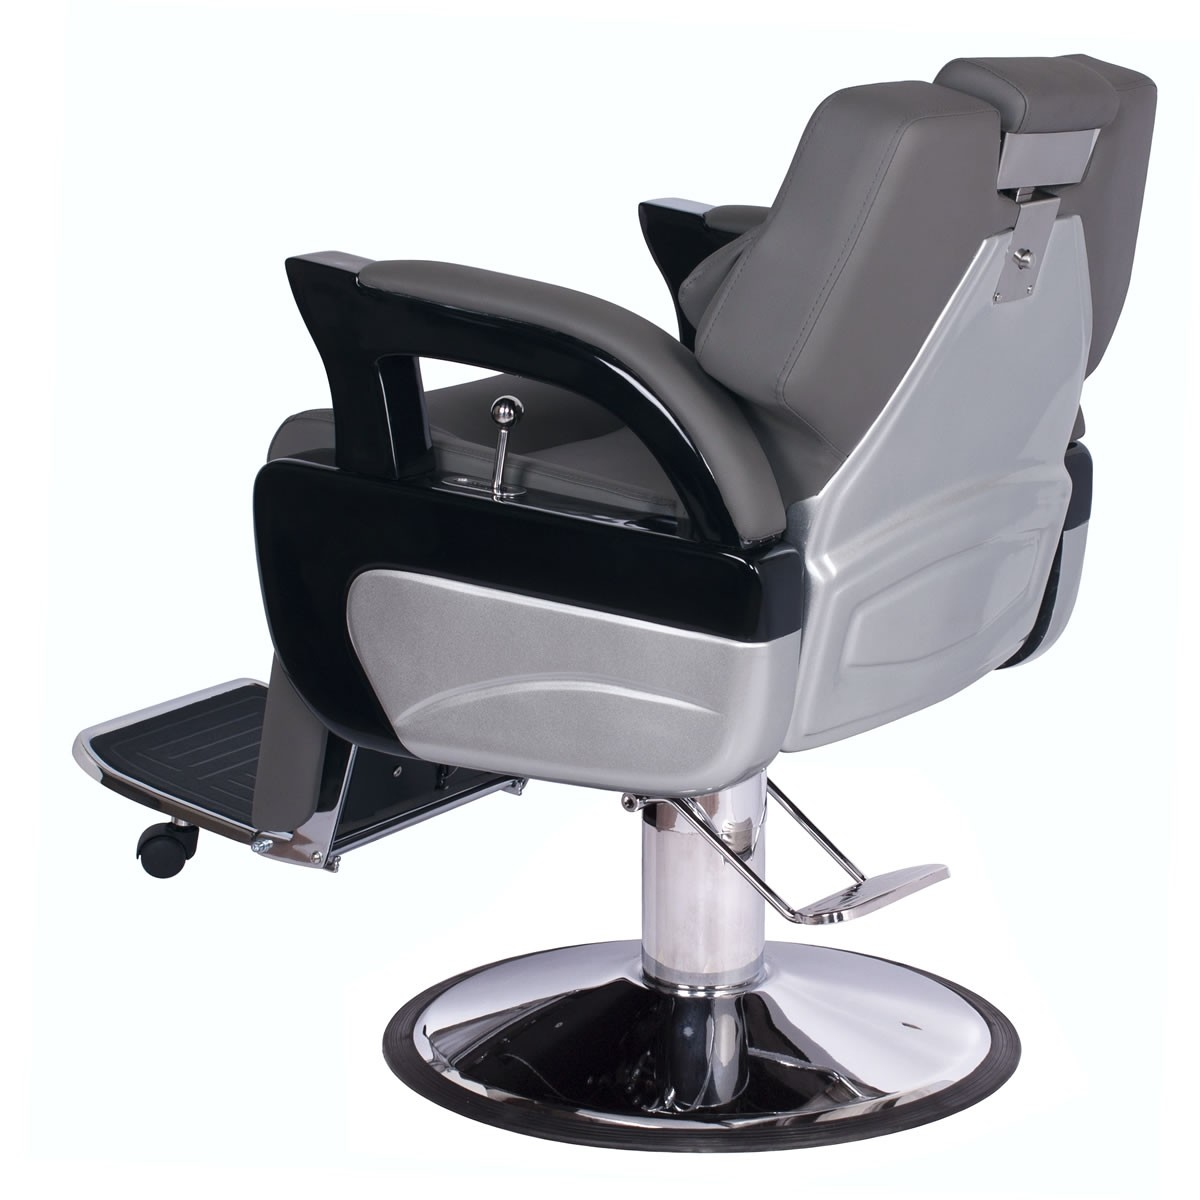 """AUGUSTO"" Luxury Barbershop Chair"